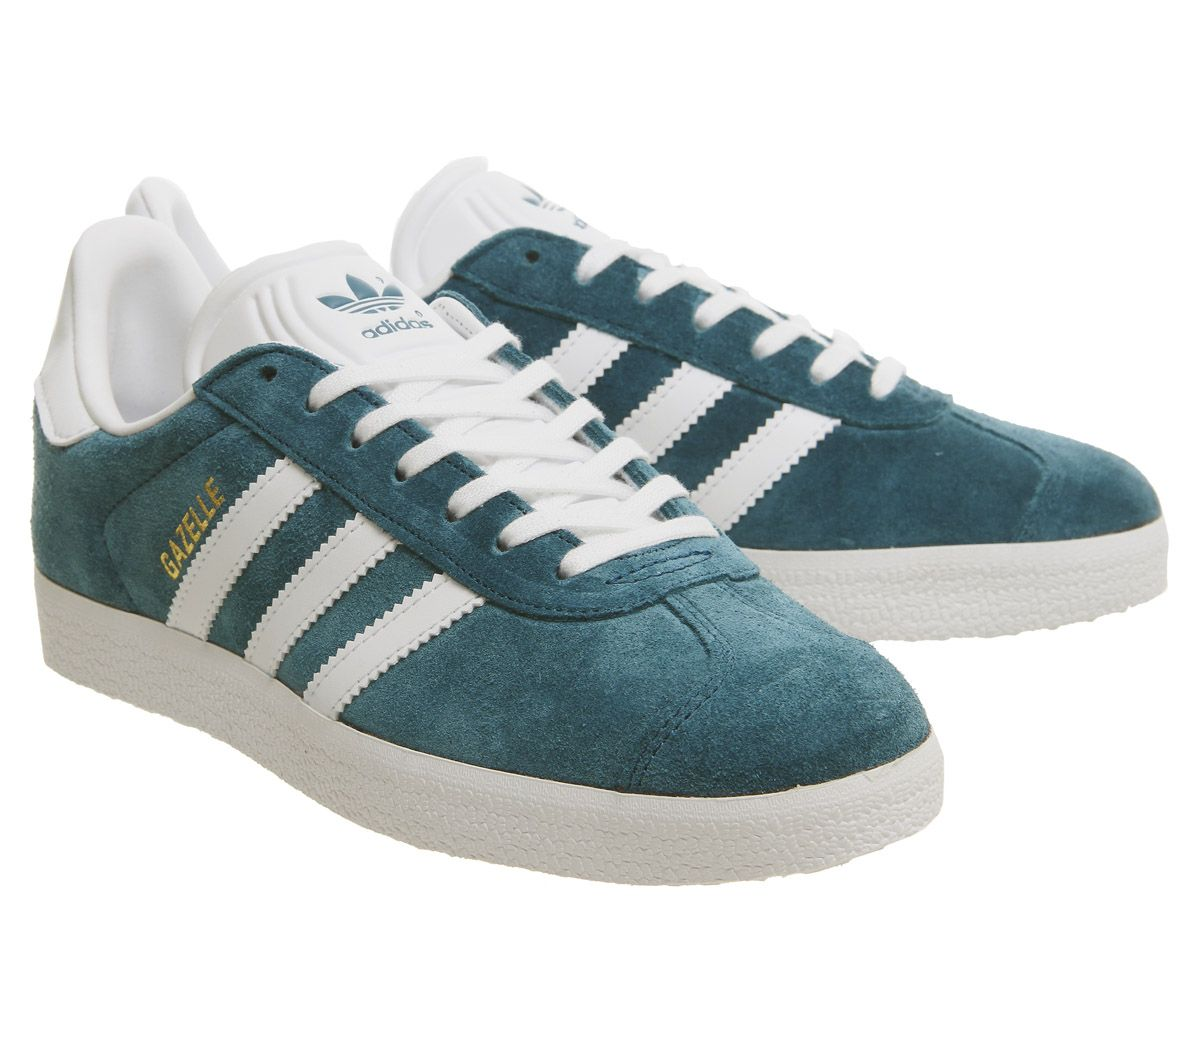 save off 264e4 bf5dc Mens-Adidas-Gazelle-Trainers-Petrol-Night-Trainers-Shoes thumbnail